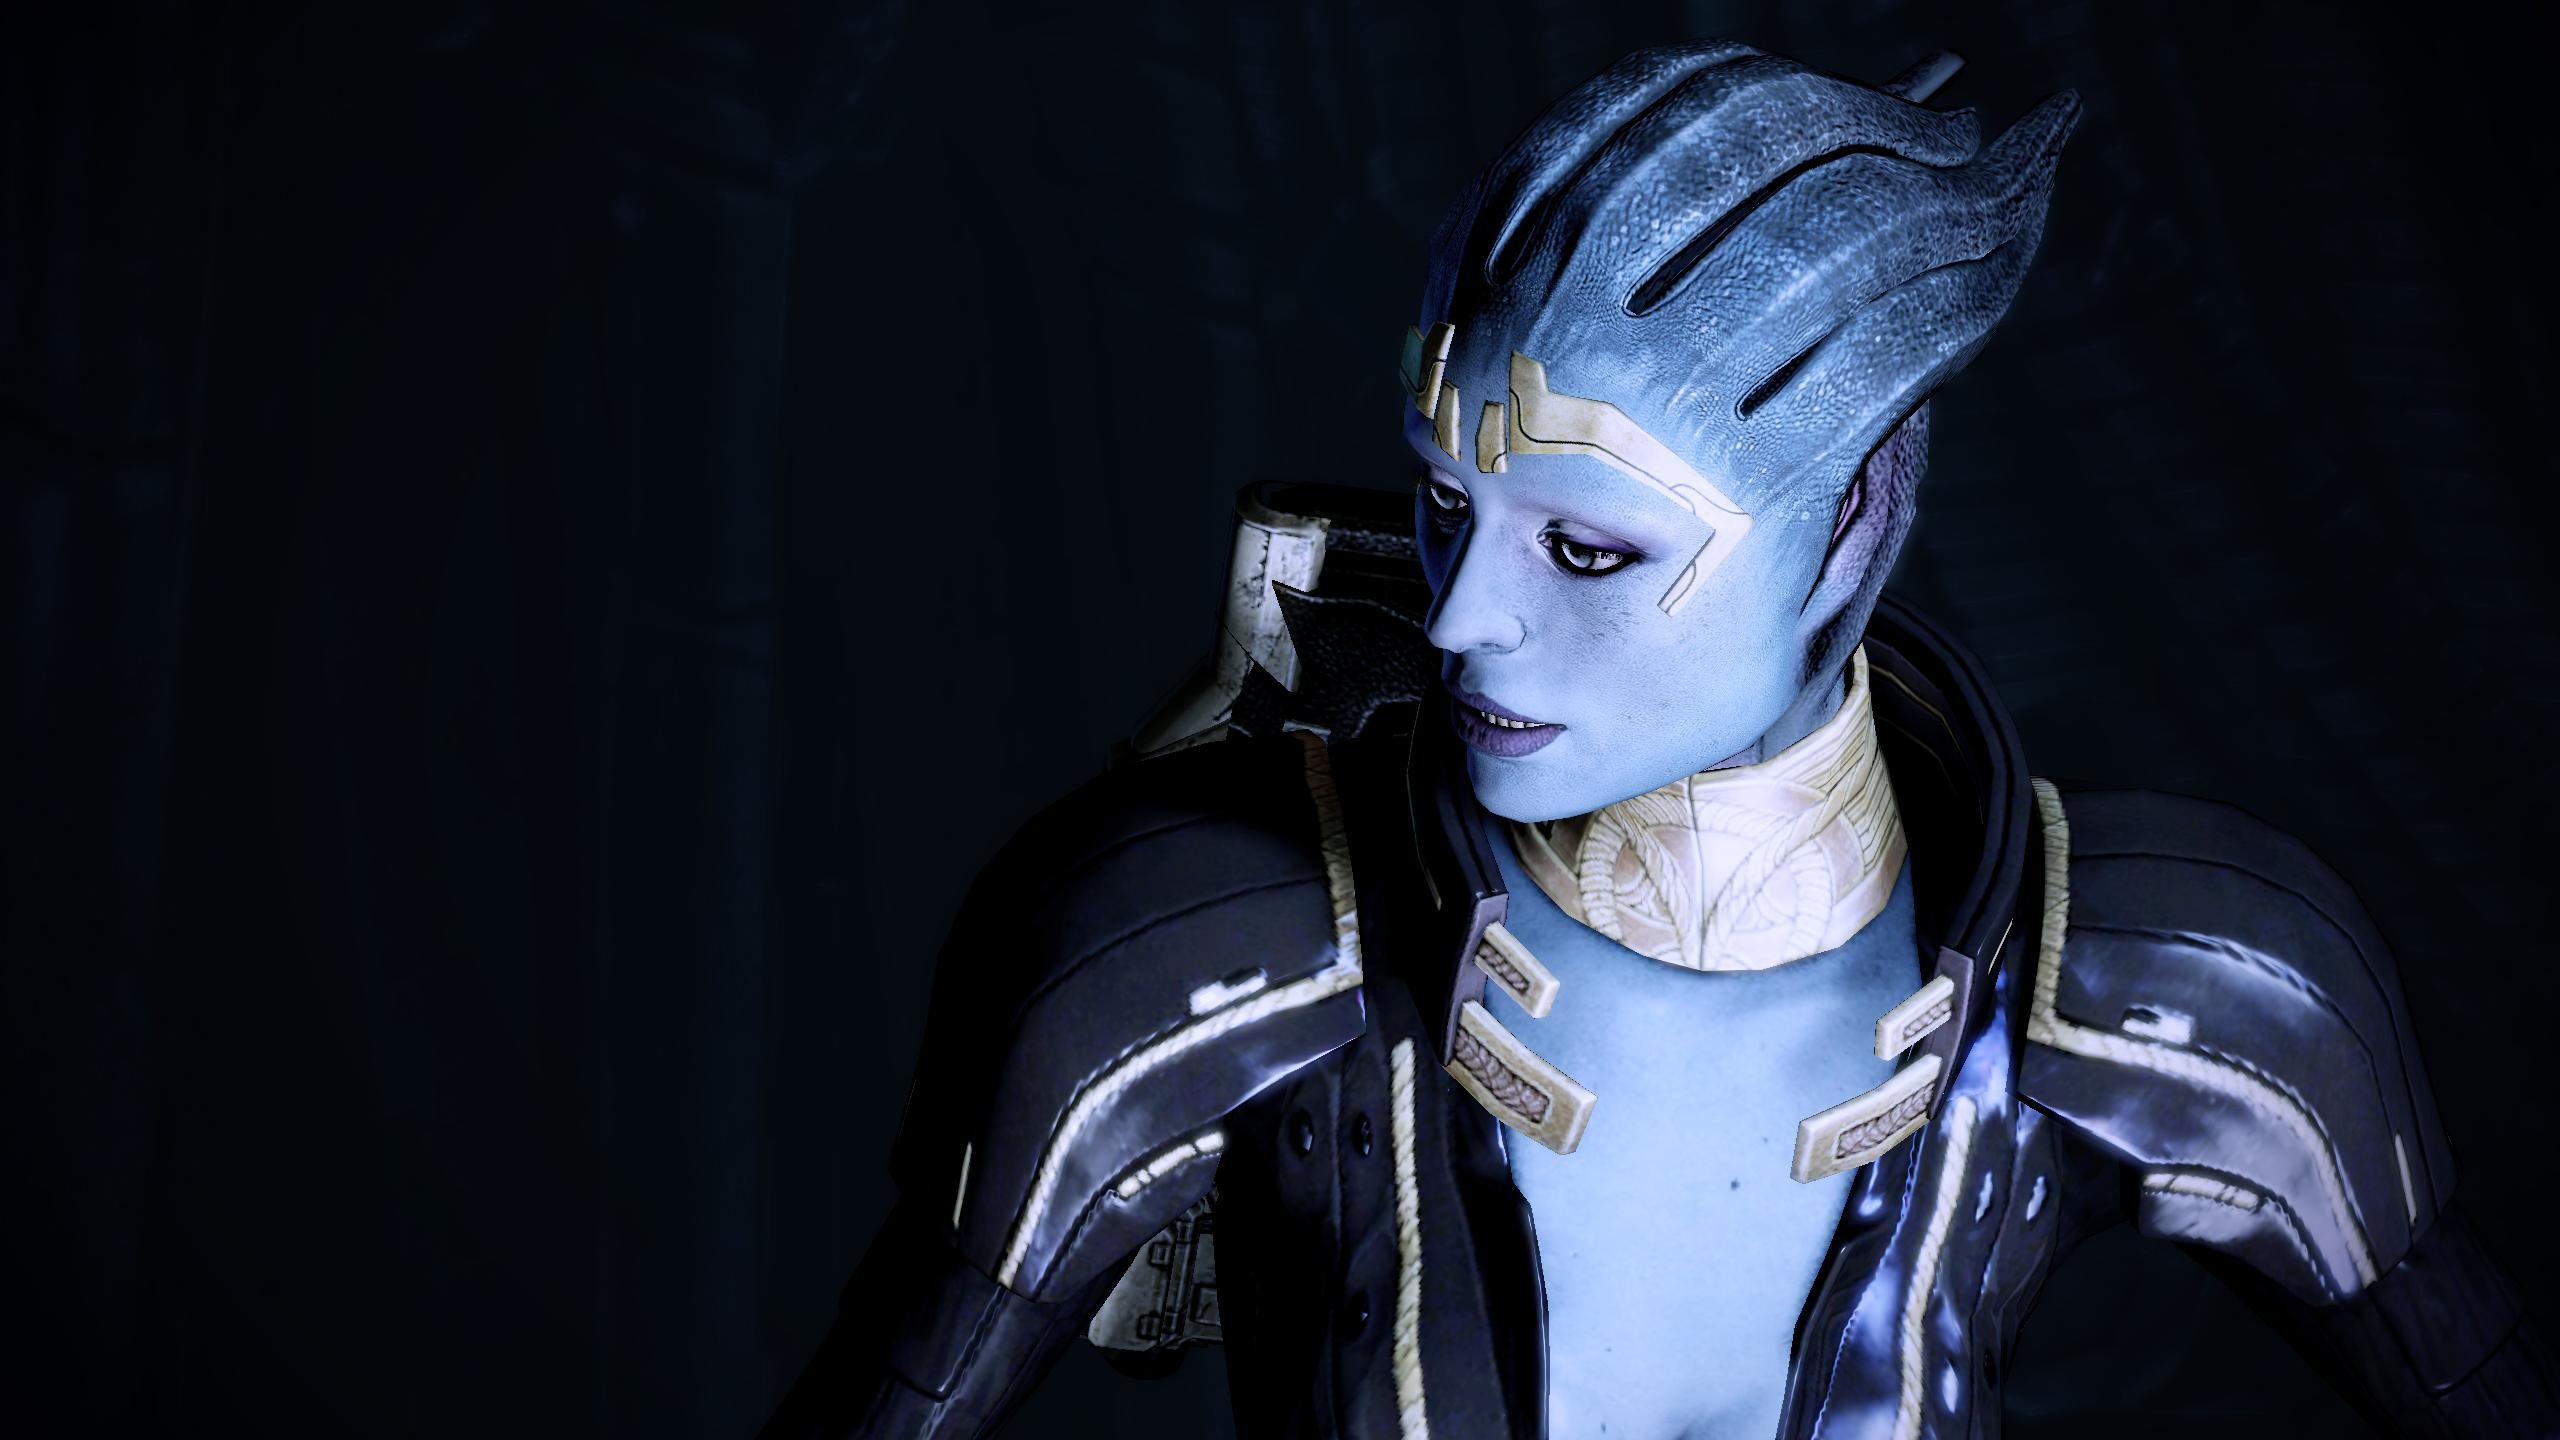 Mass Effect 2, Justical Samara